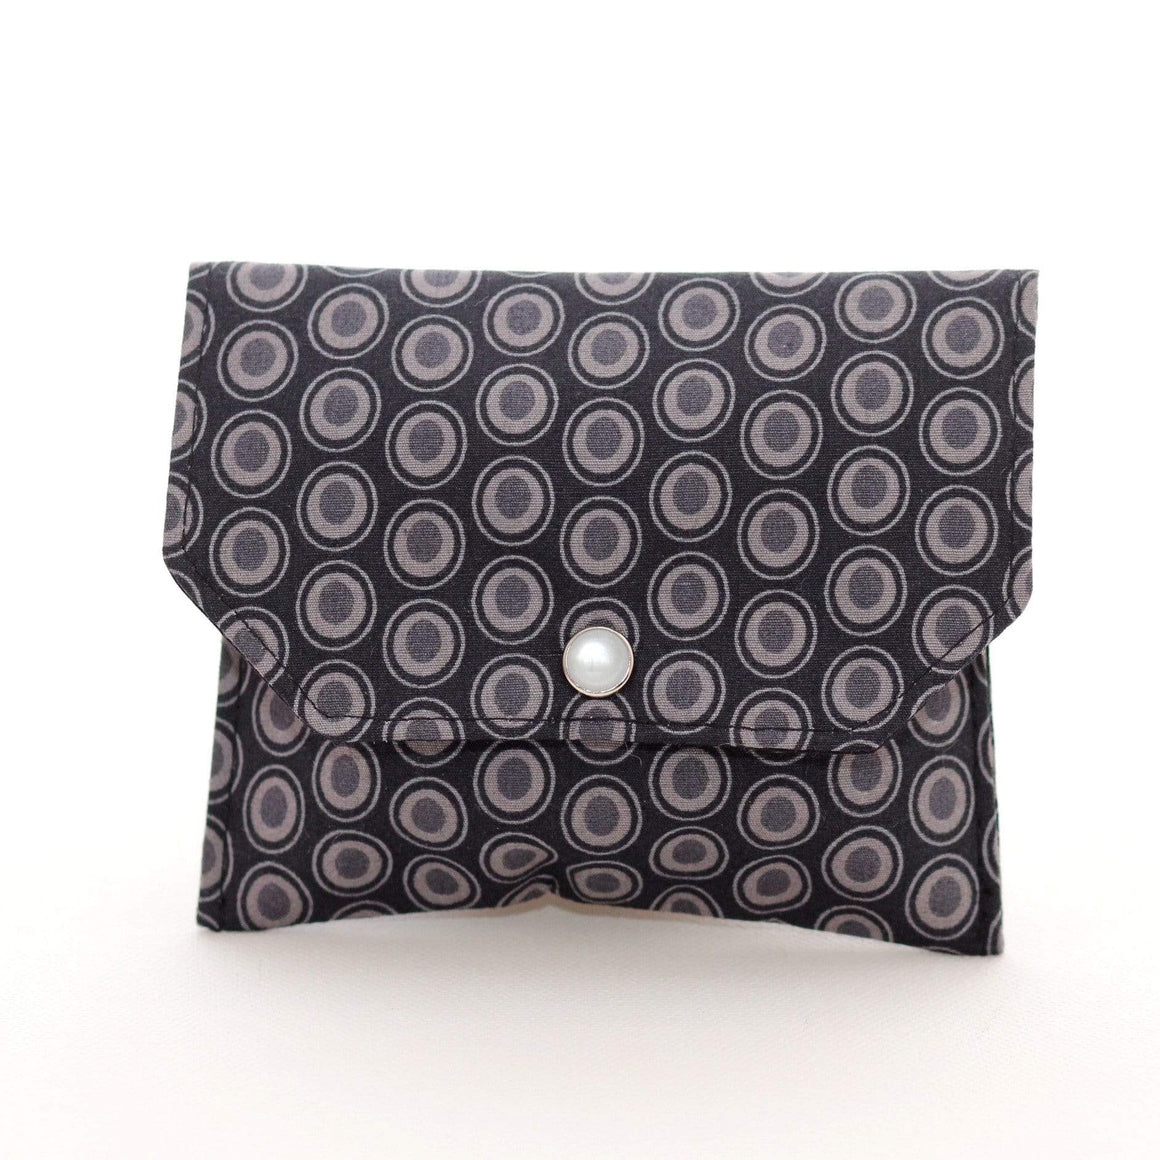 Essential Oil Bag (small) Black Ovals - Holds your most important oils - Petal and Stem